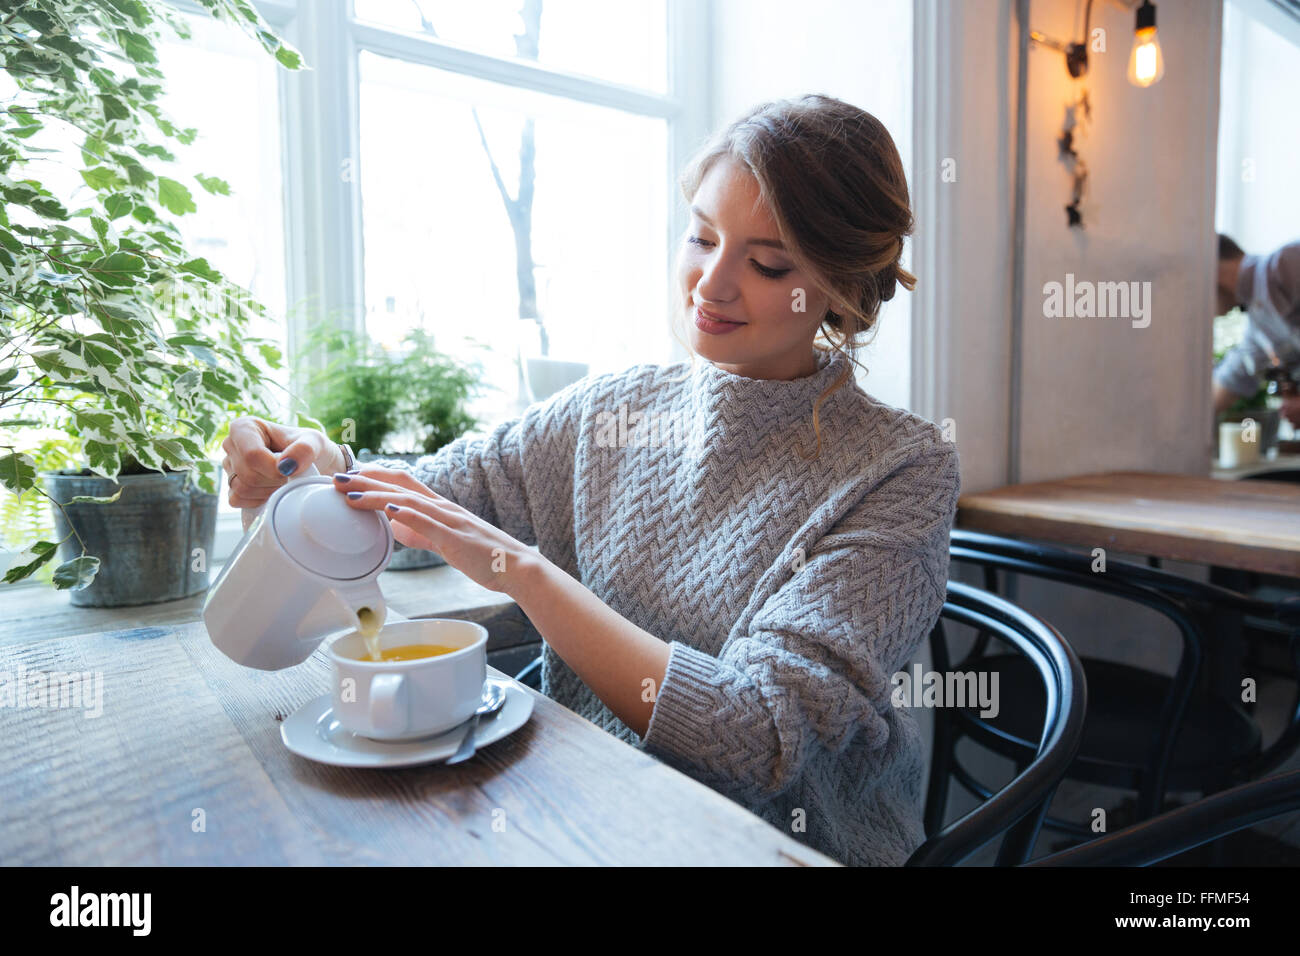 Happy woman drinking tea in cafe Photo Stock